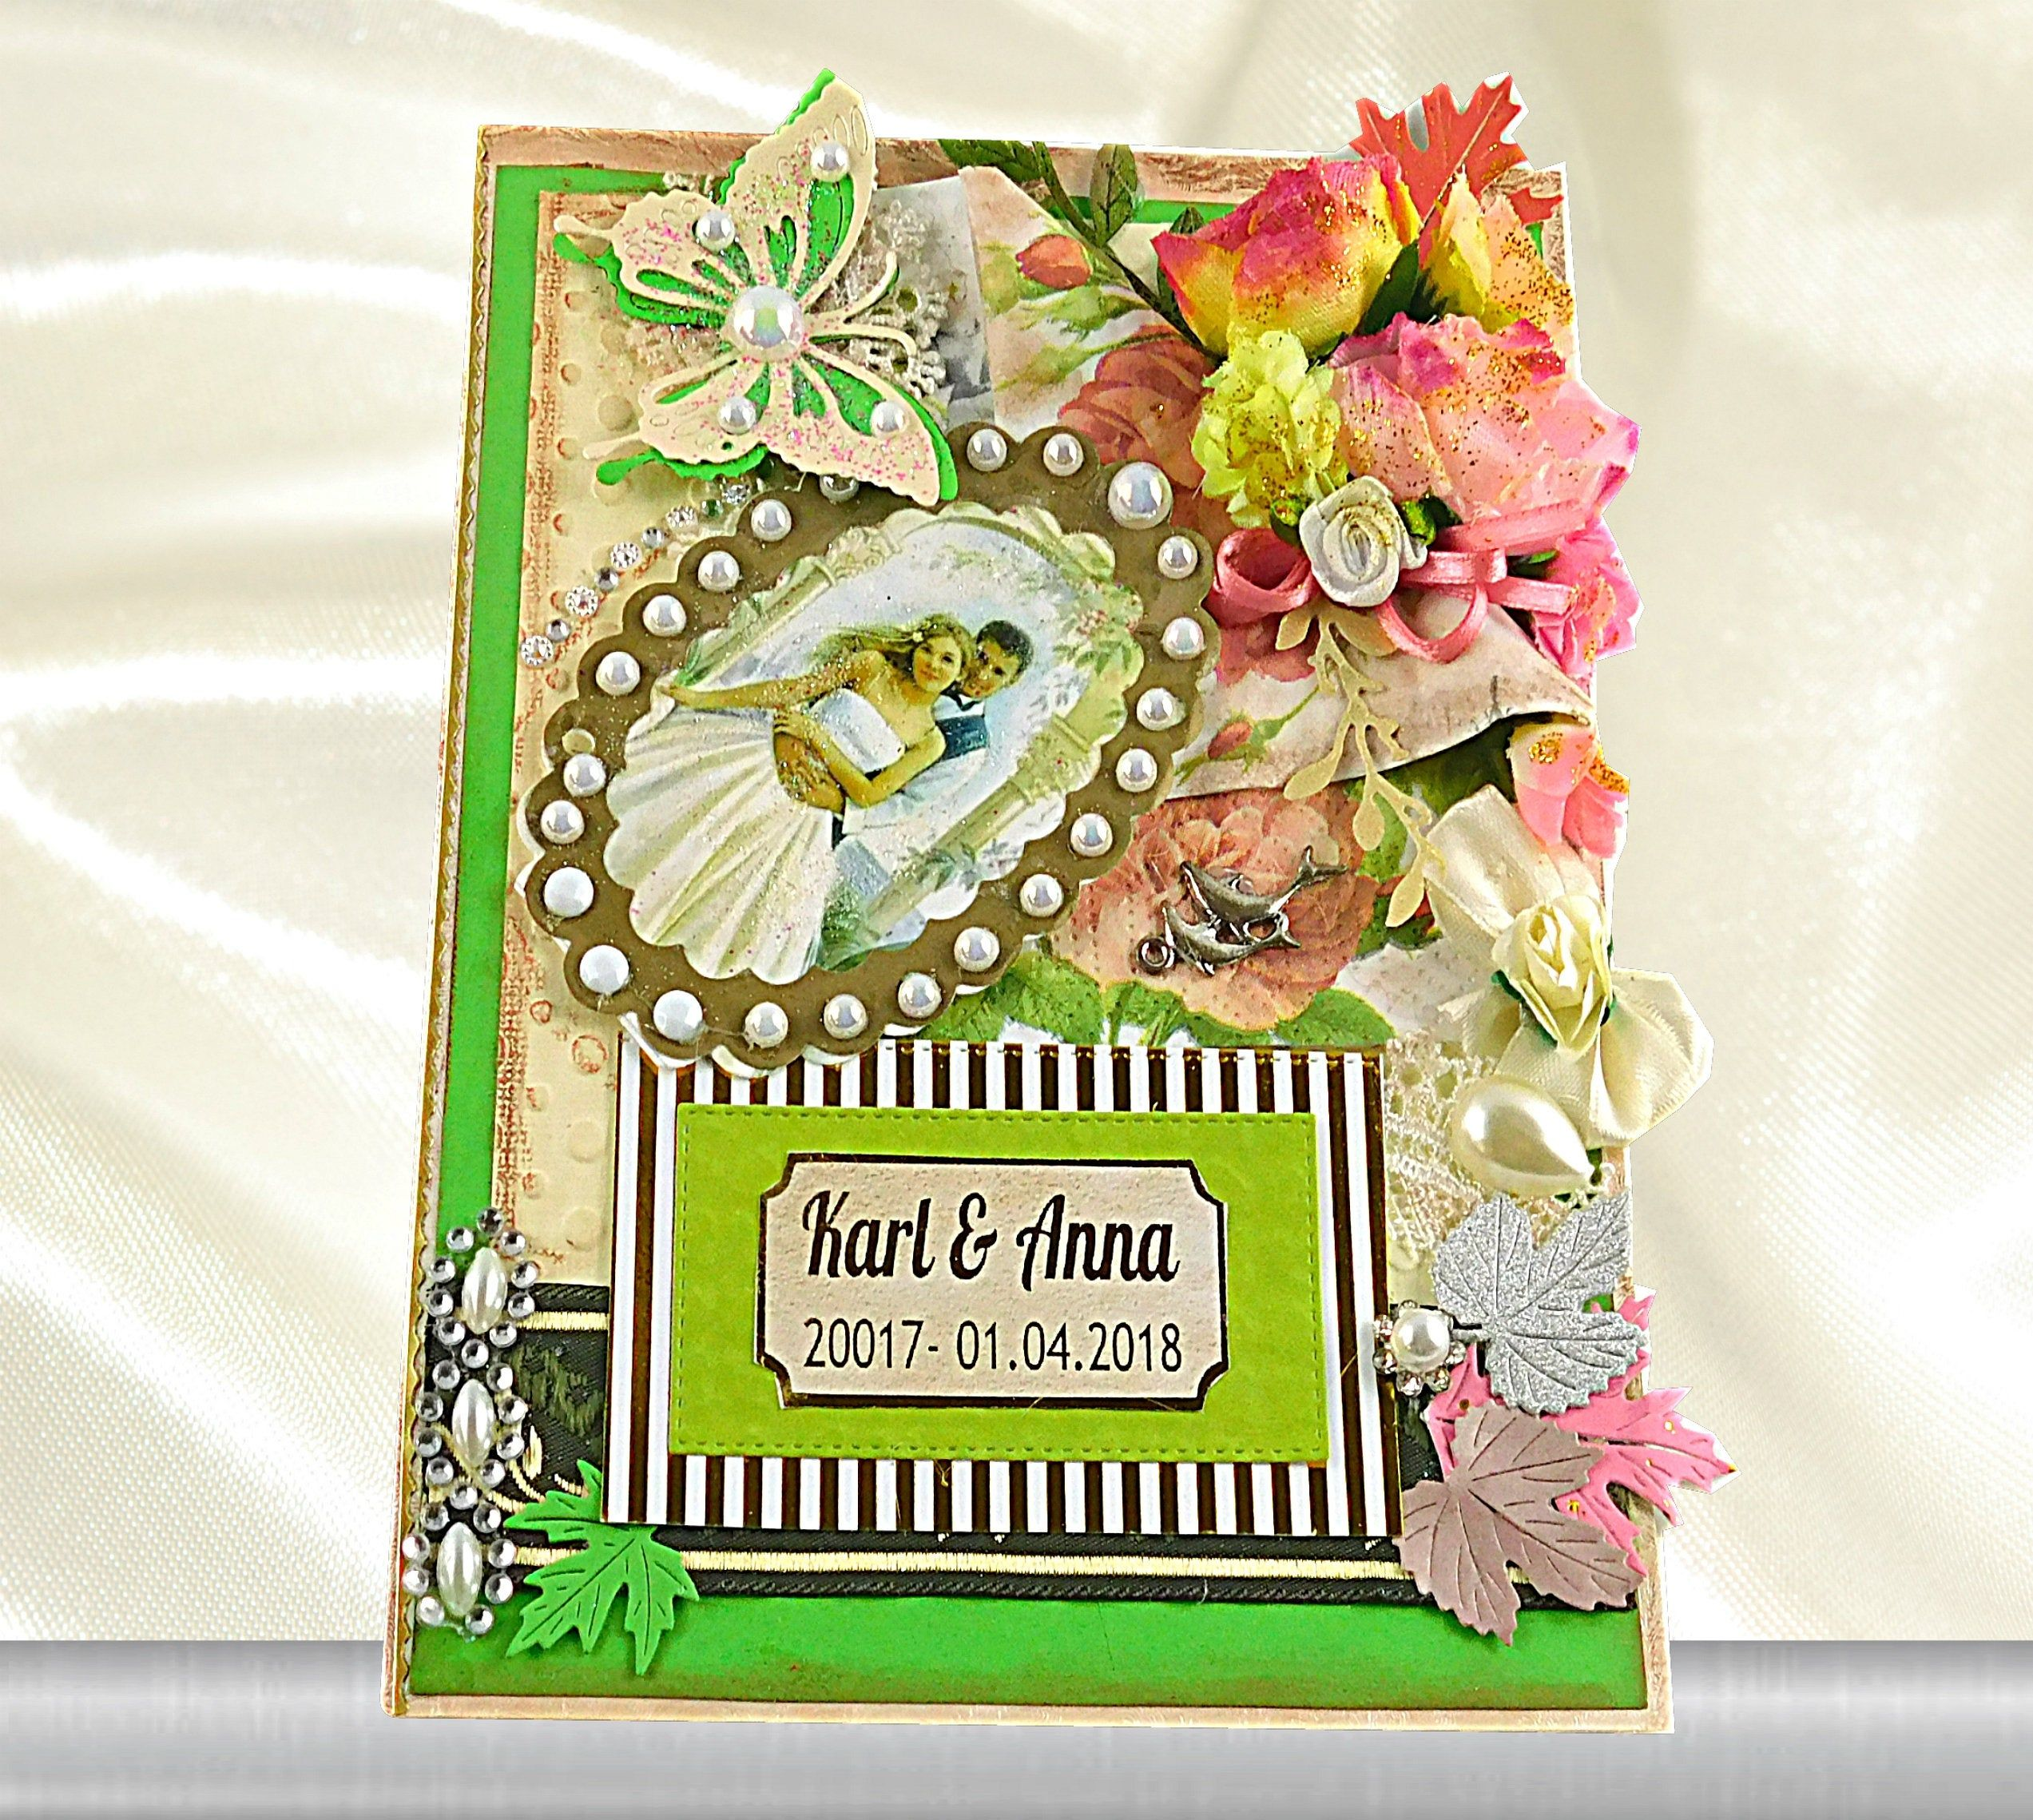 1st anniversary card. Green anniversary card for couple